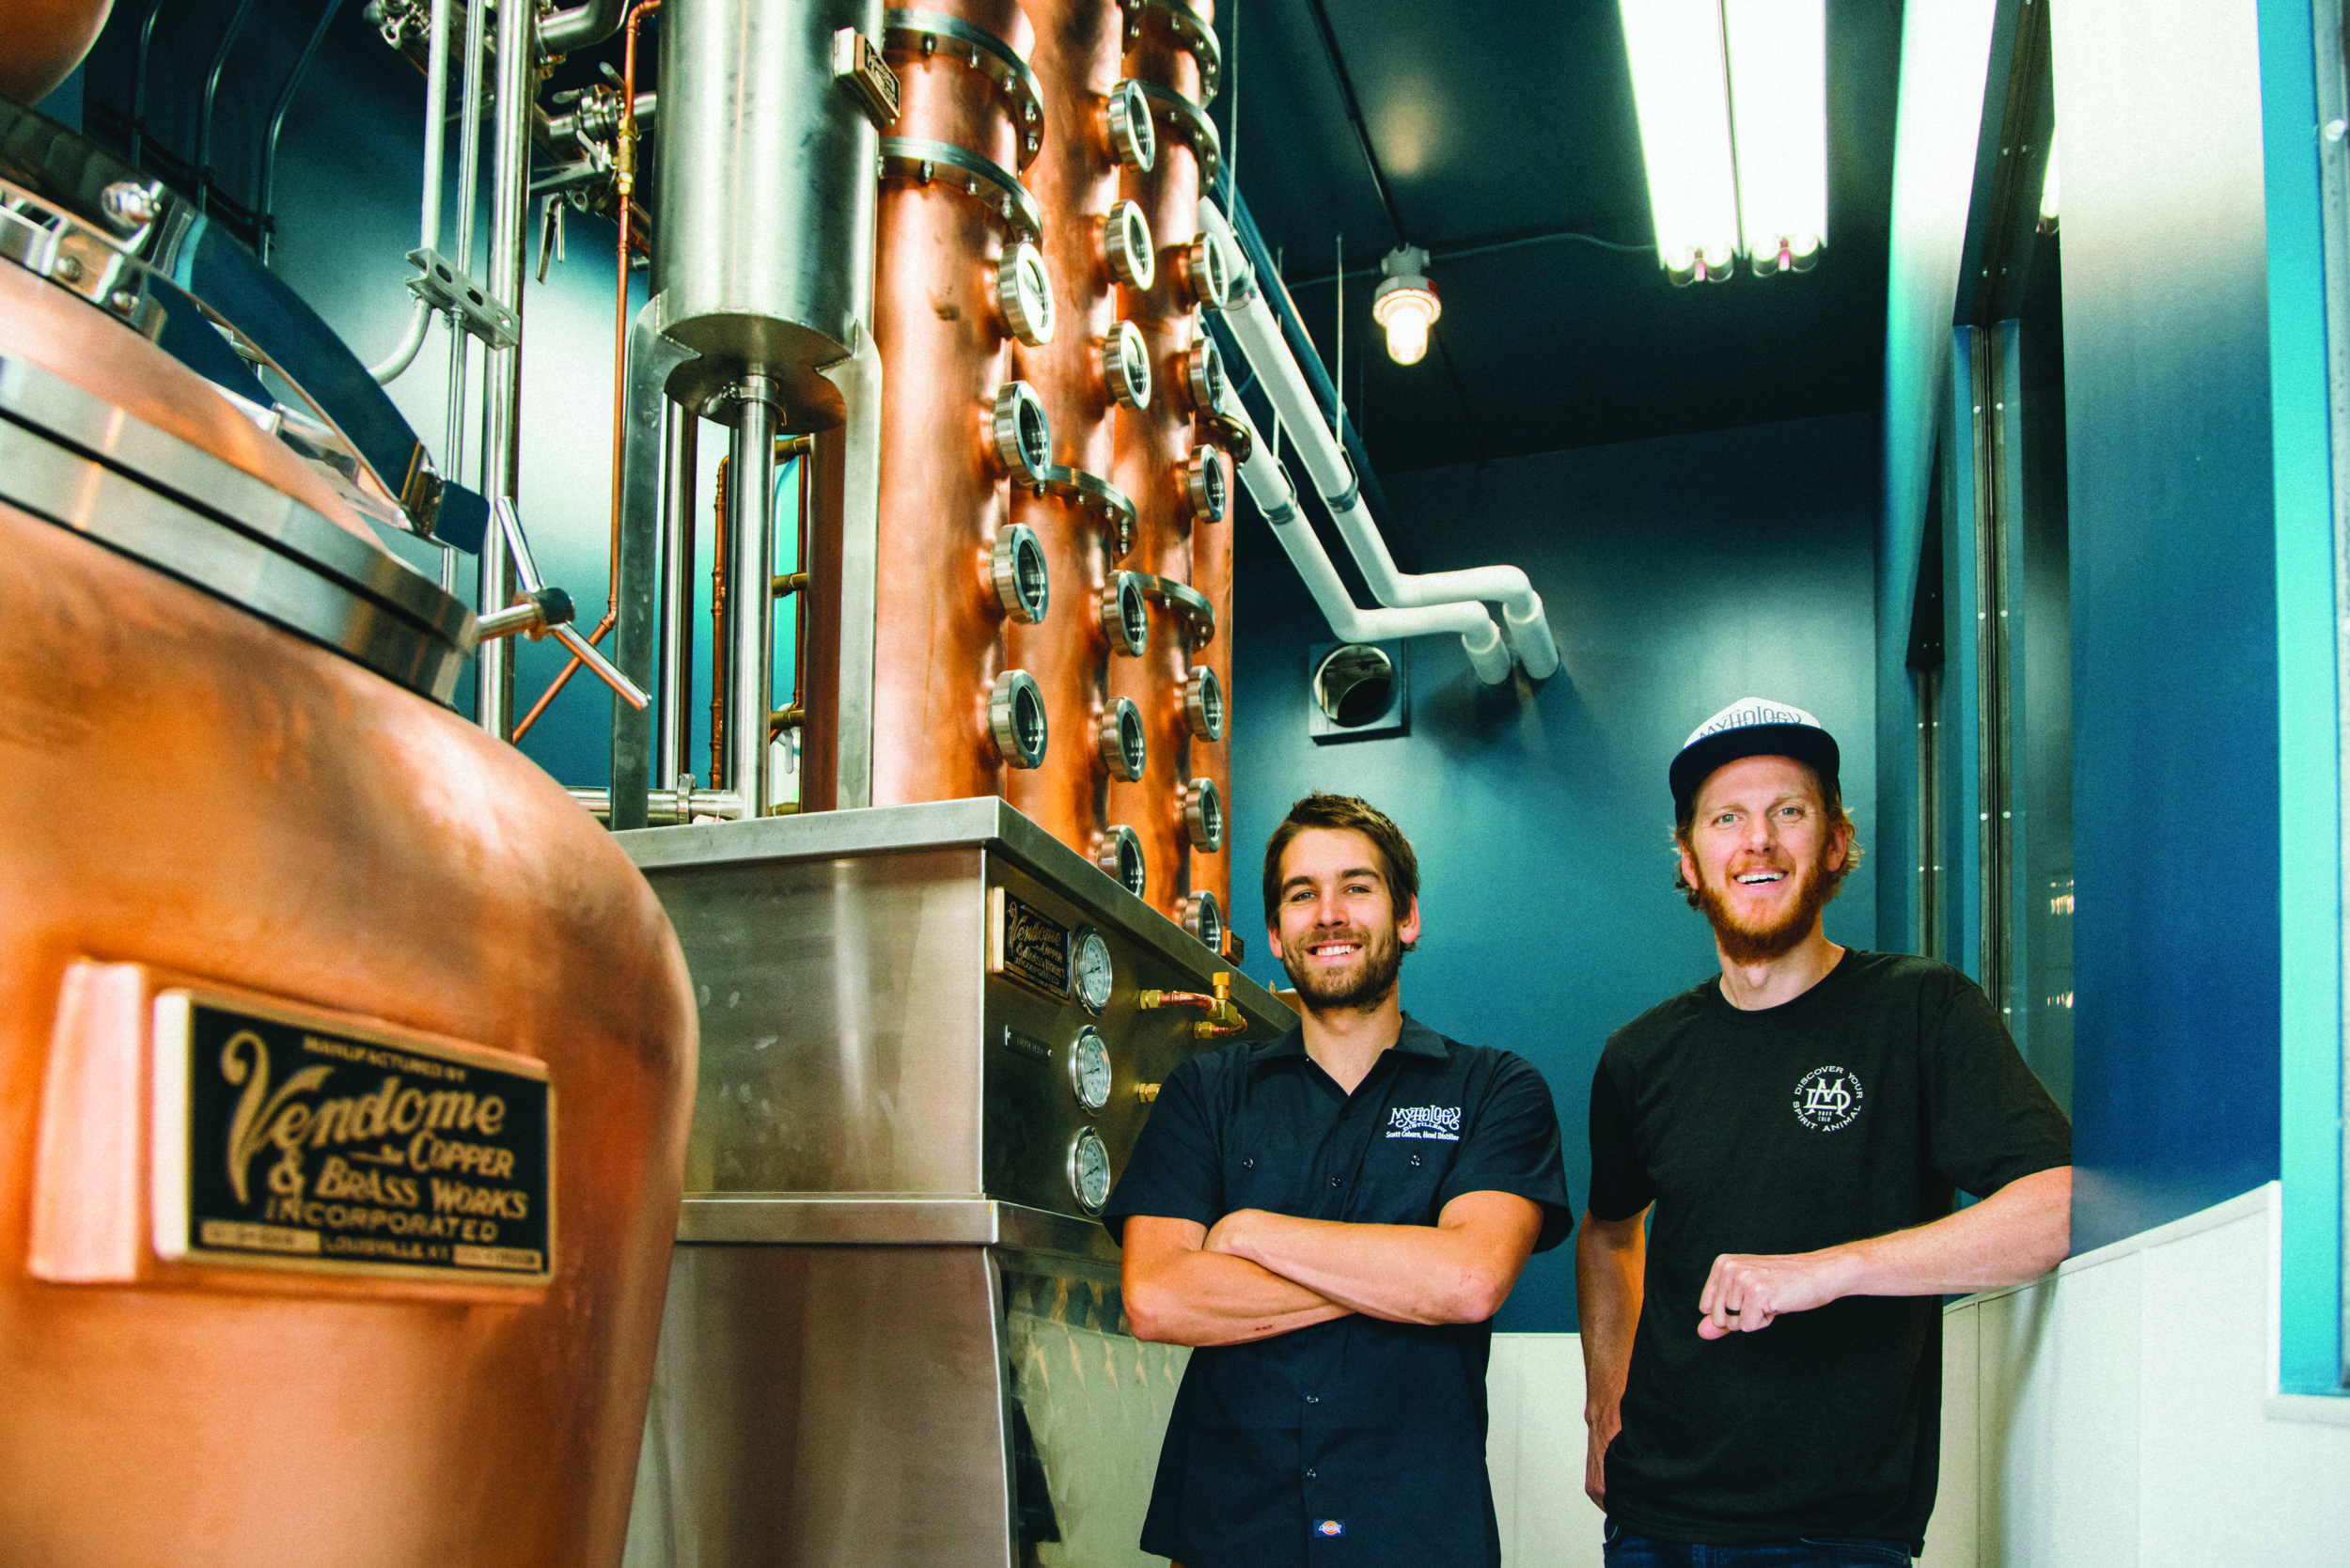 Co-owner Scott Yeates and Head Distiller Scott Coburn of Mythology Distillery. Photo: Noah Berg